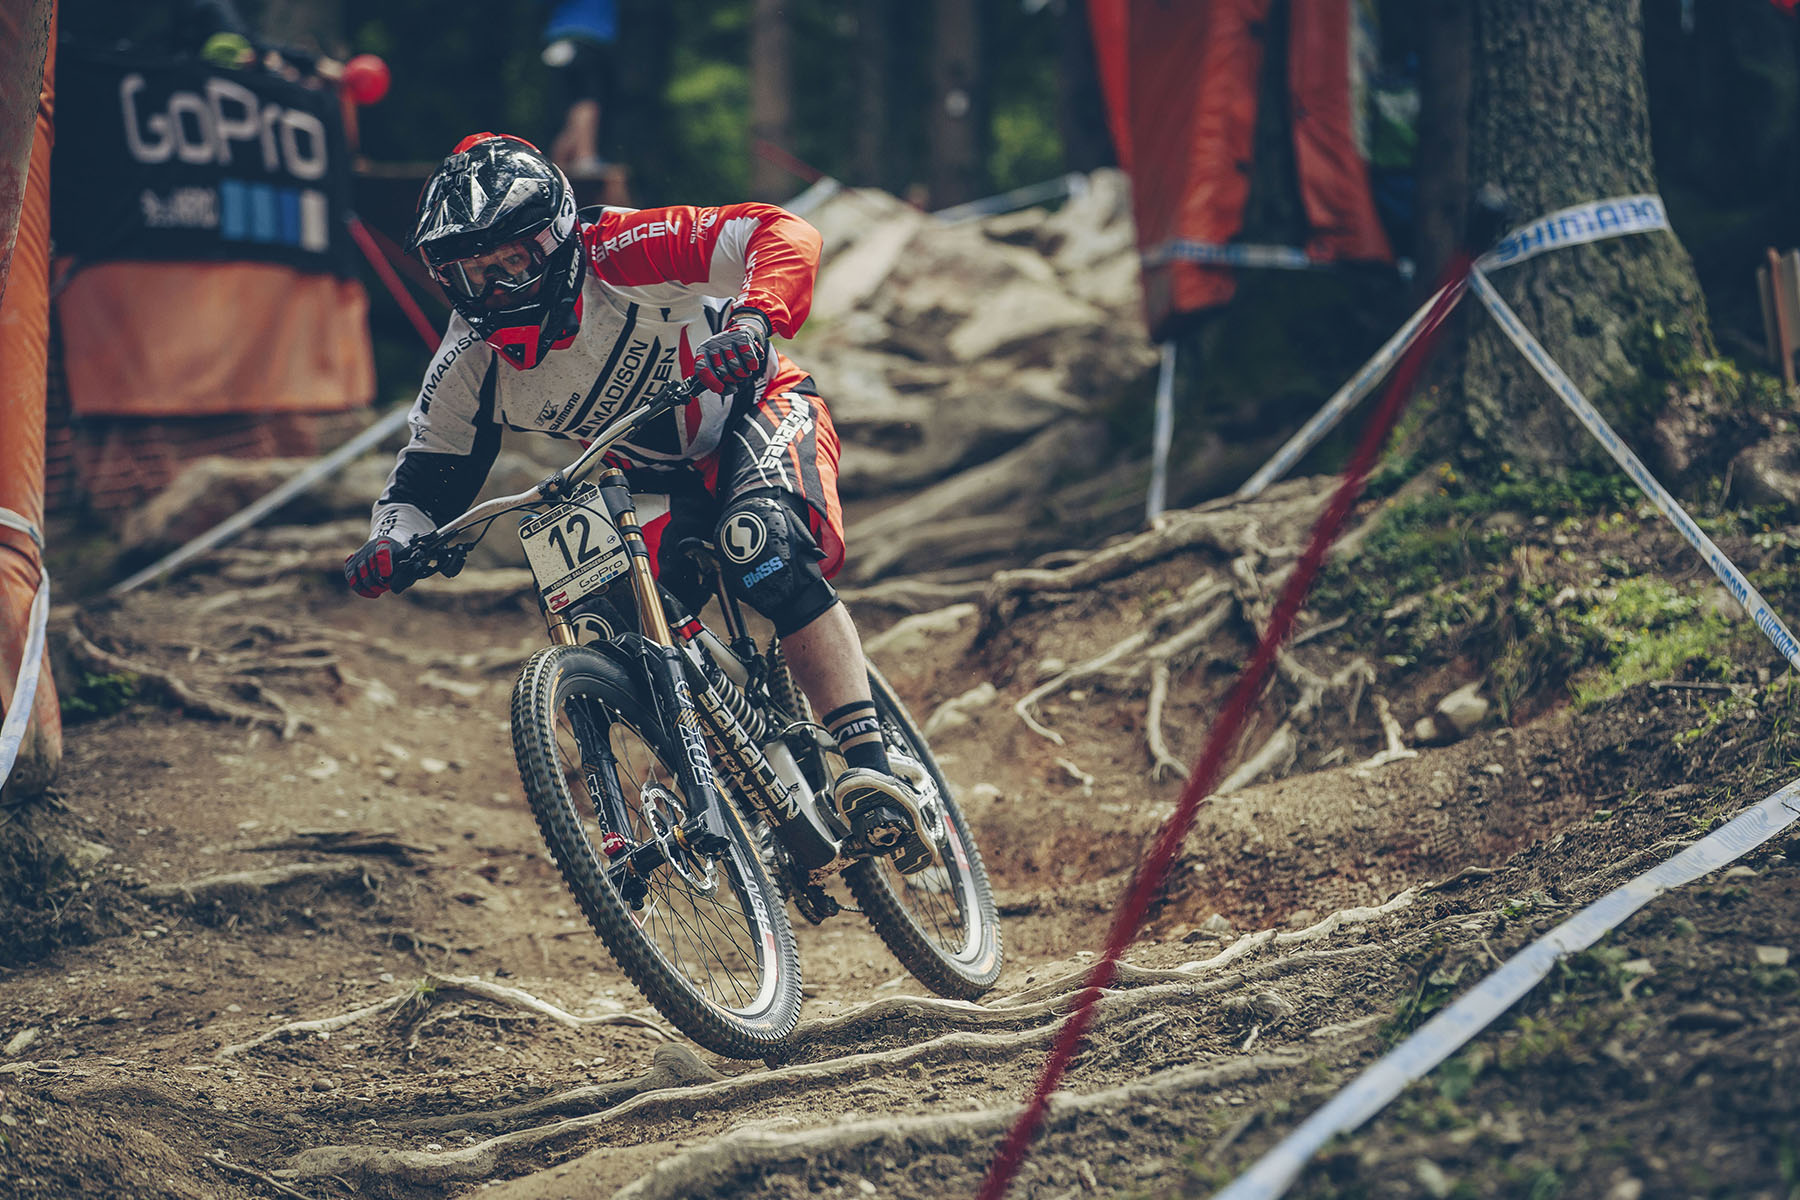 The position Matt Simmonds has needed all year so far, a tidy 6th place here will give him an all important boost coming into the last 3 rounds. He chats about his week in Leogang.